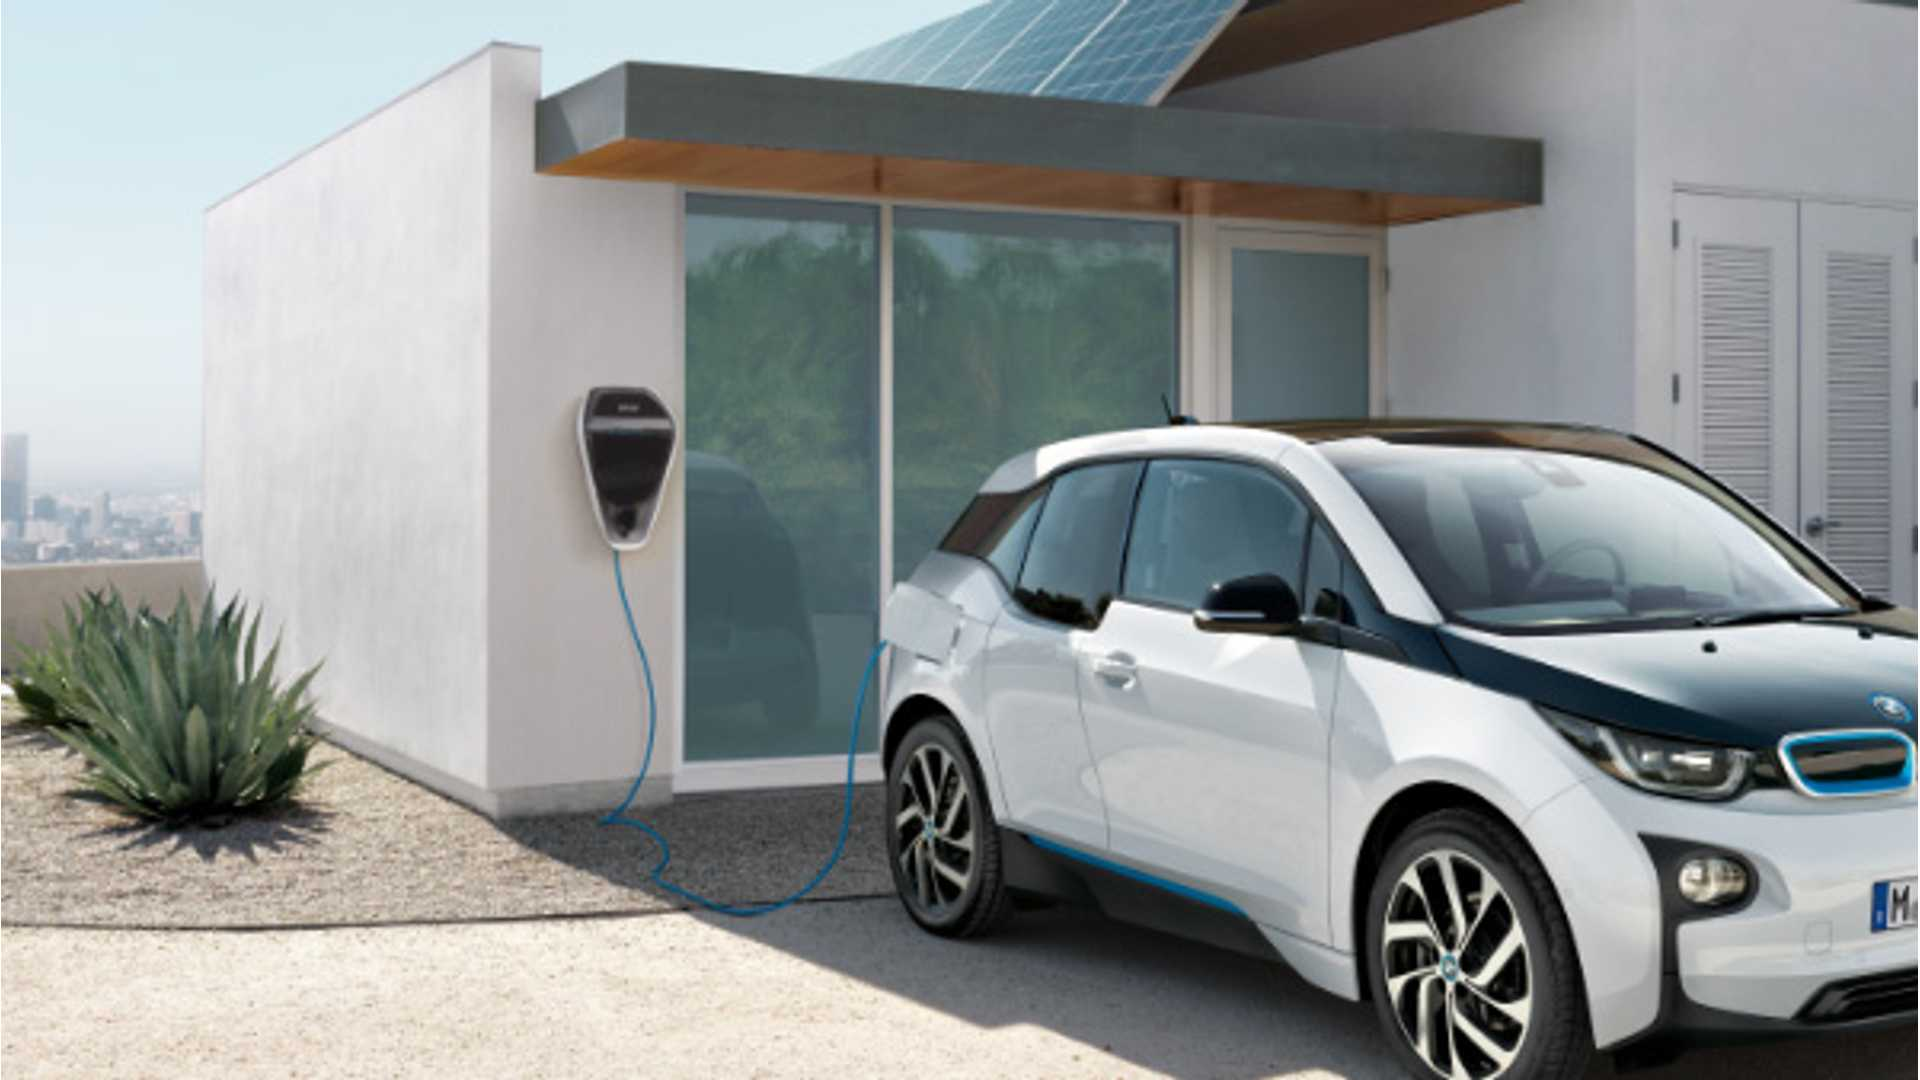 Charging Electrical Vehicle